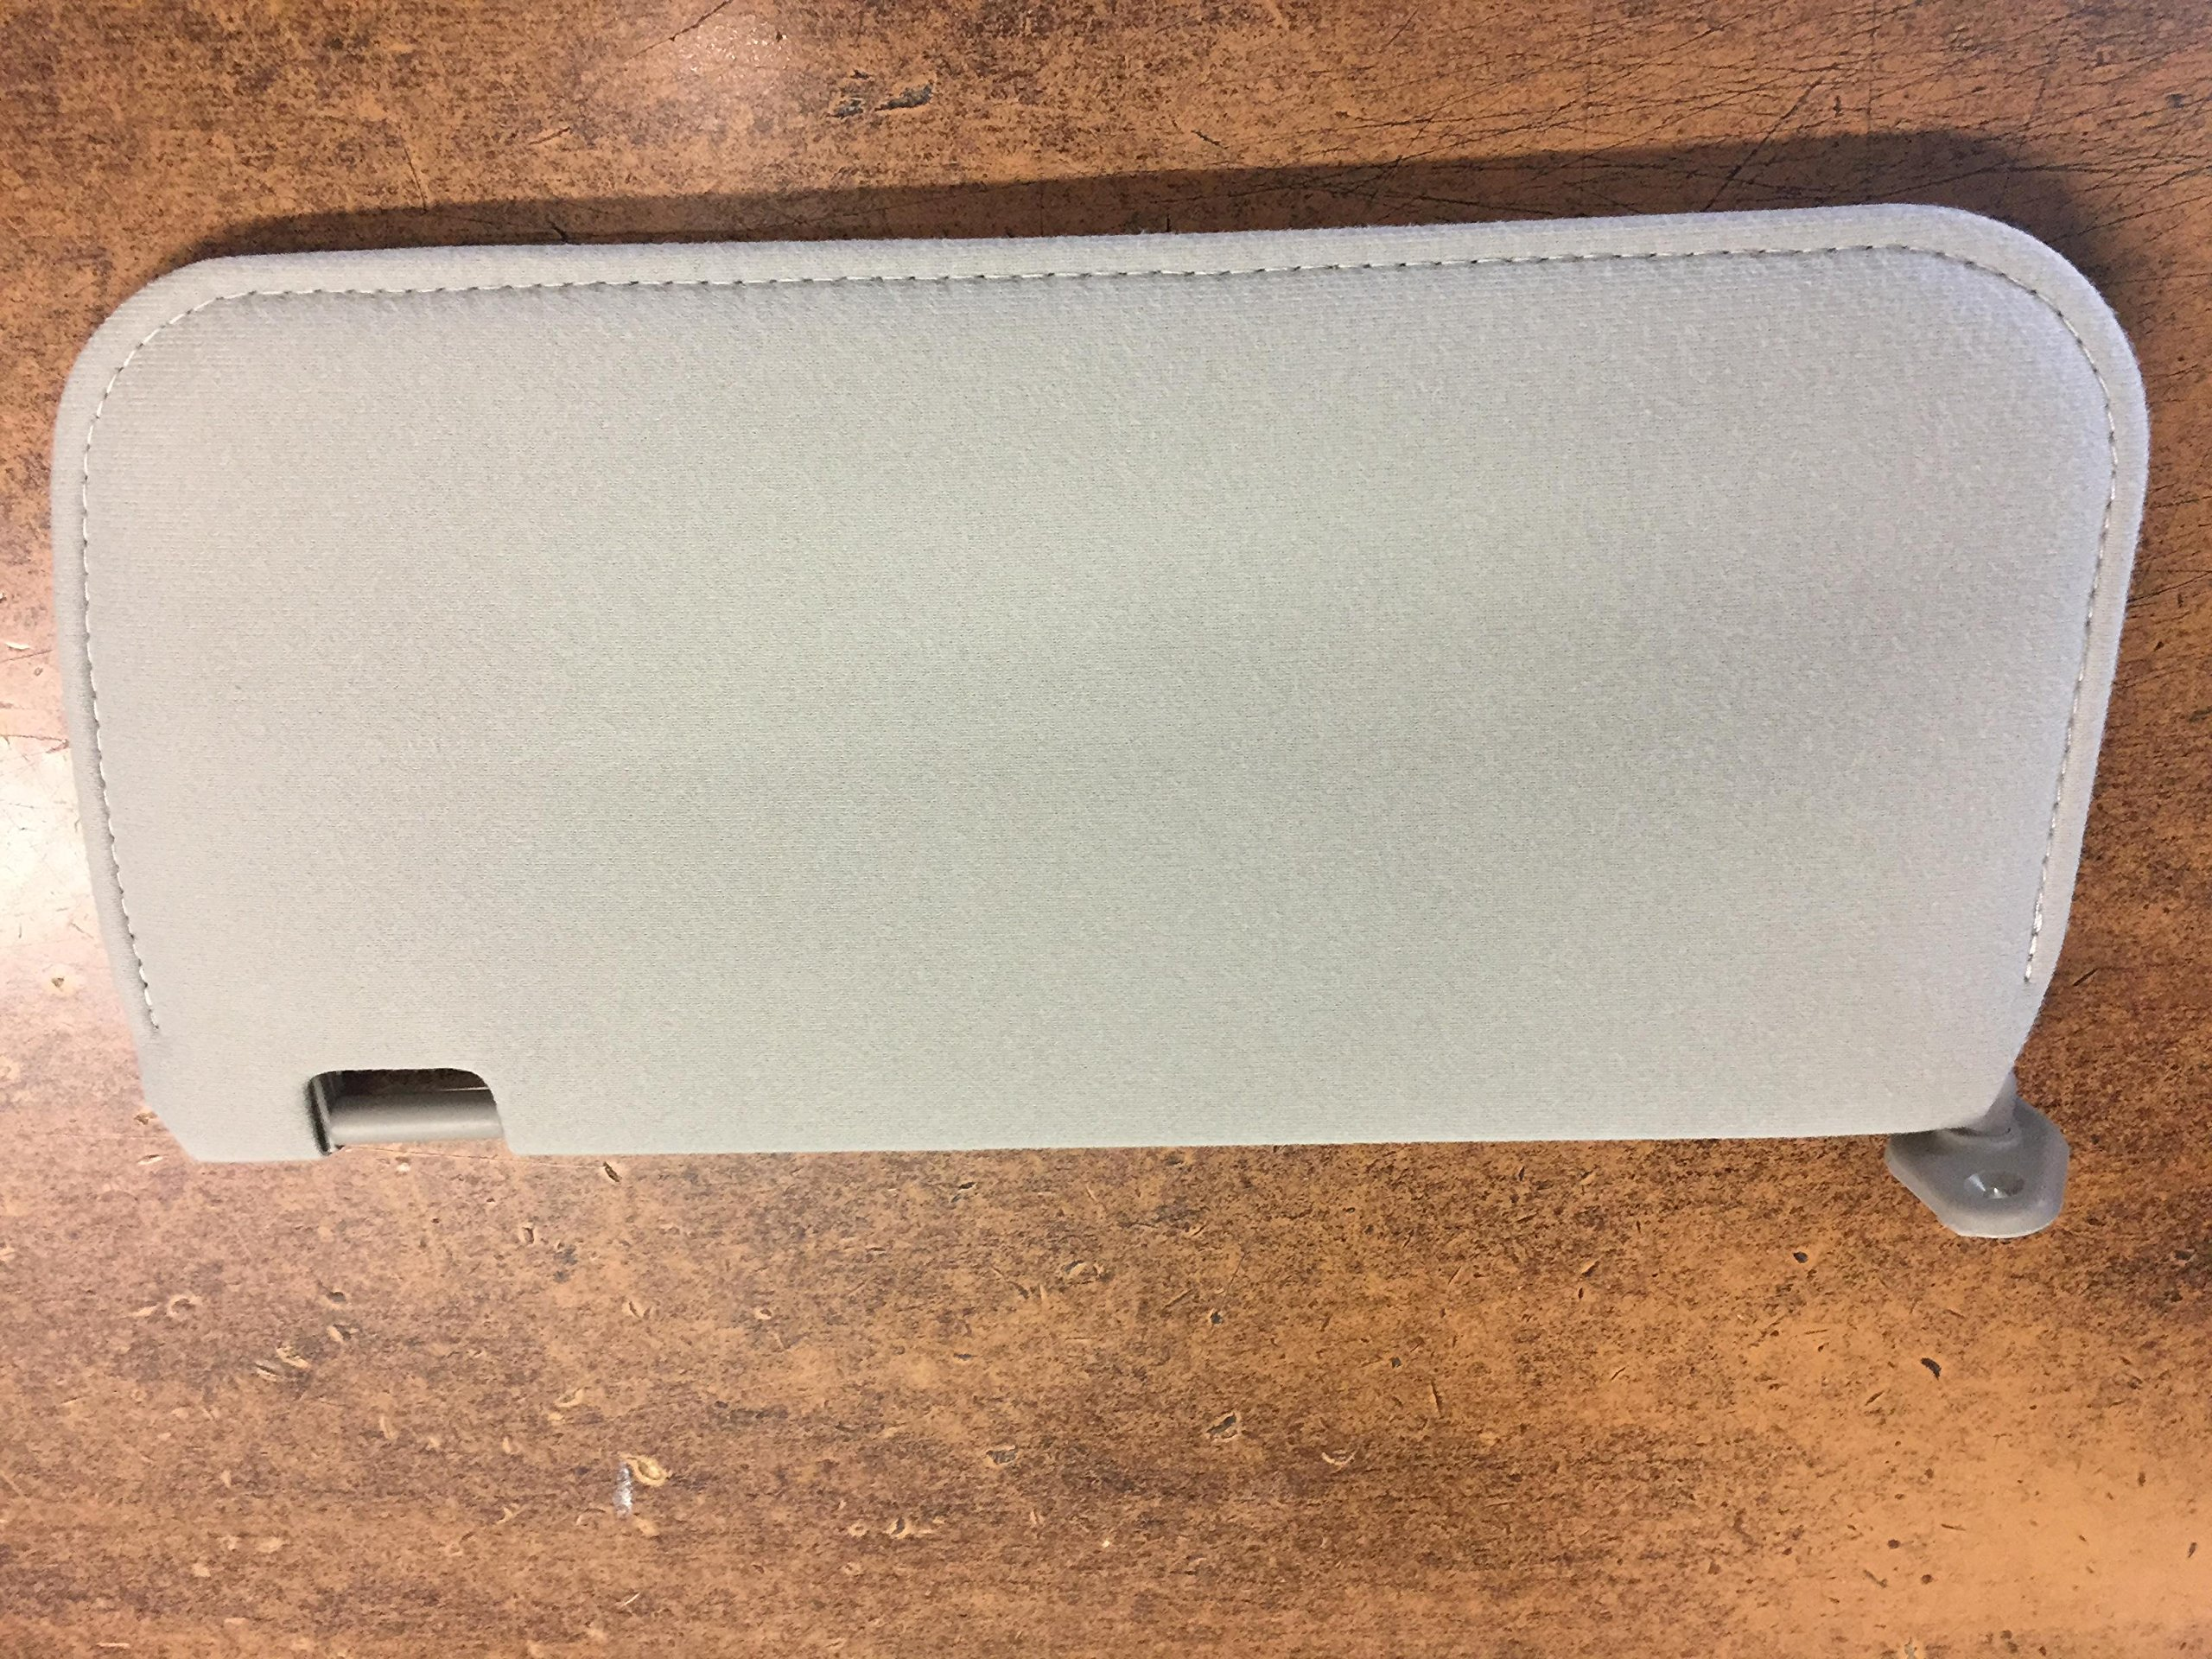 NEW OEM NISSAN 2002-2004 XTERRA / FRONTIER LEFT SIDE SUNVISOR - GREY IN COLOR by Nissan (Image #2)